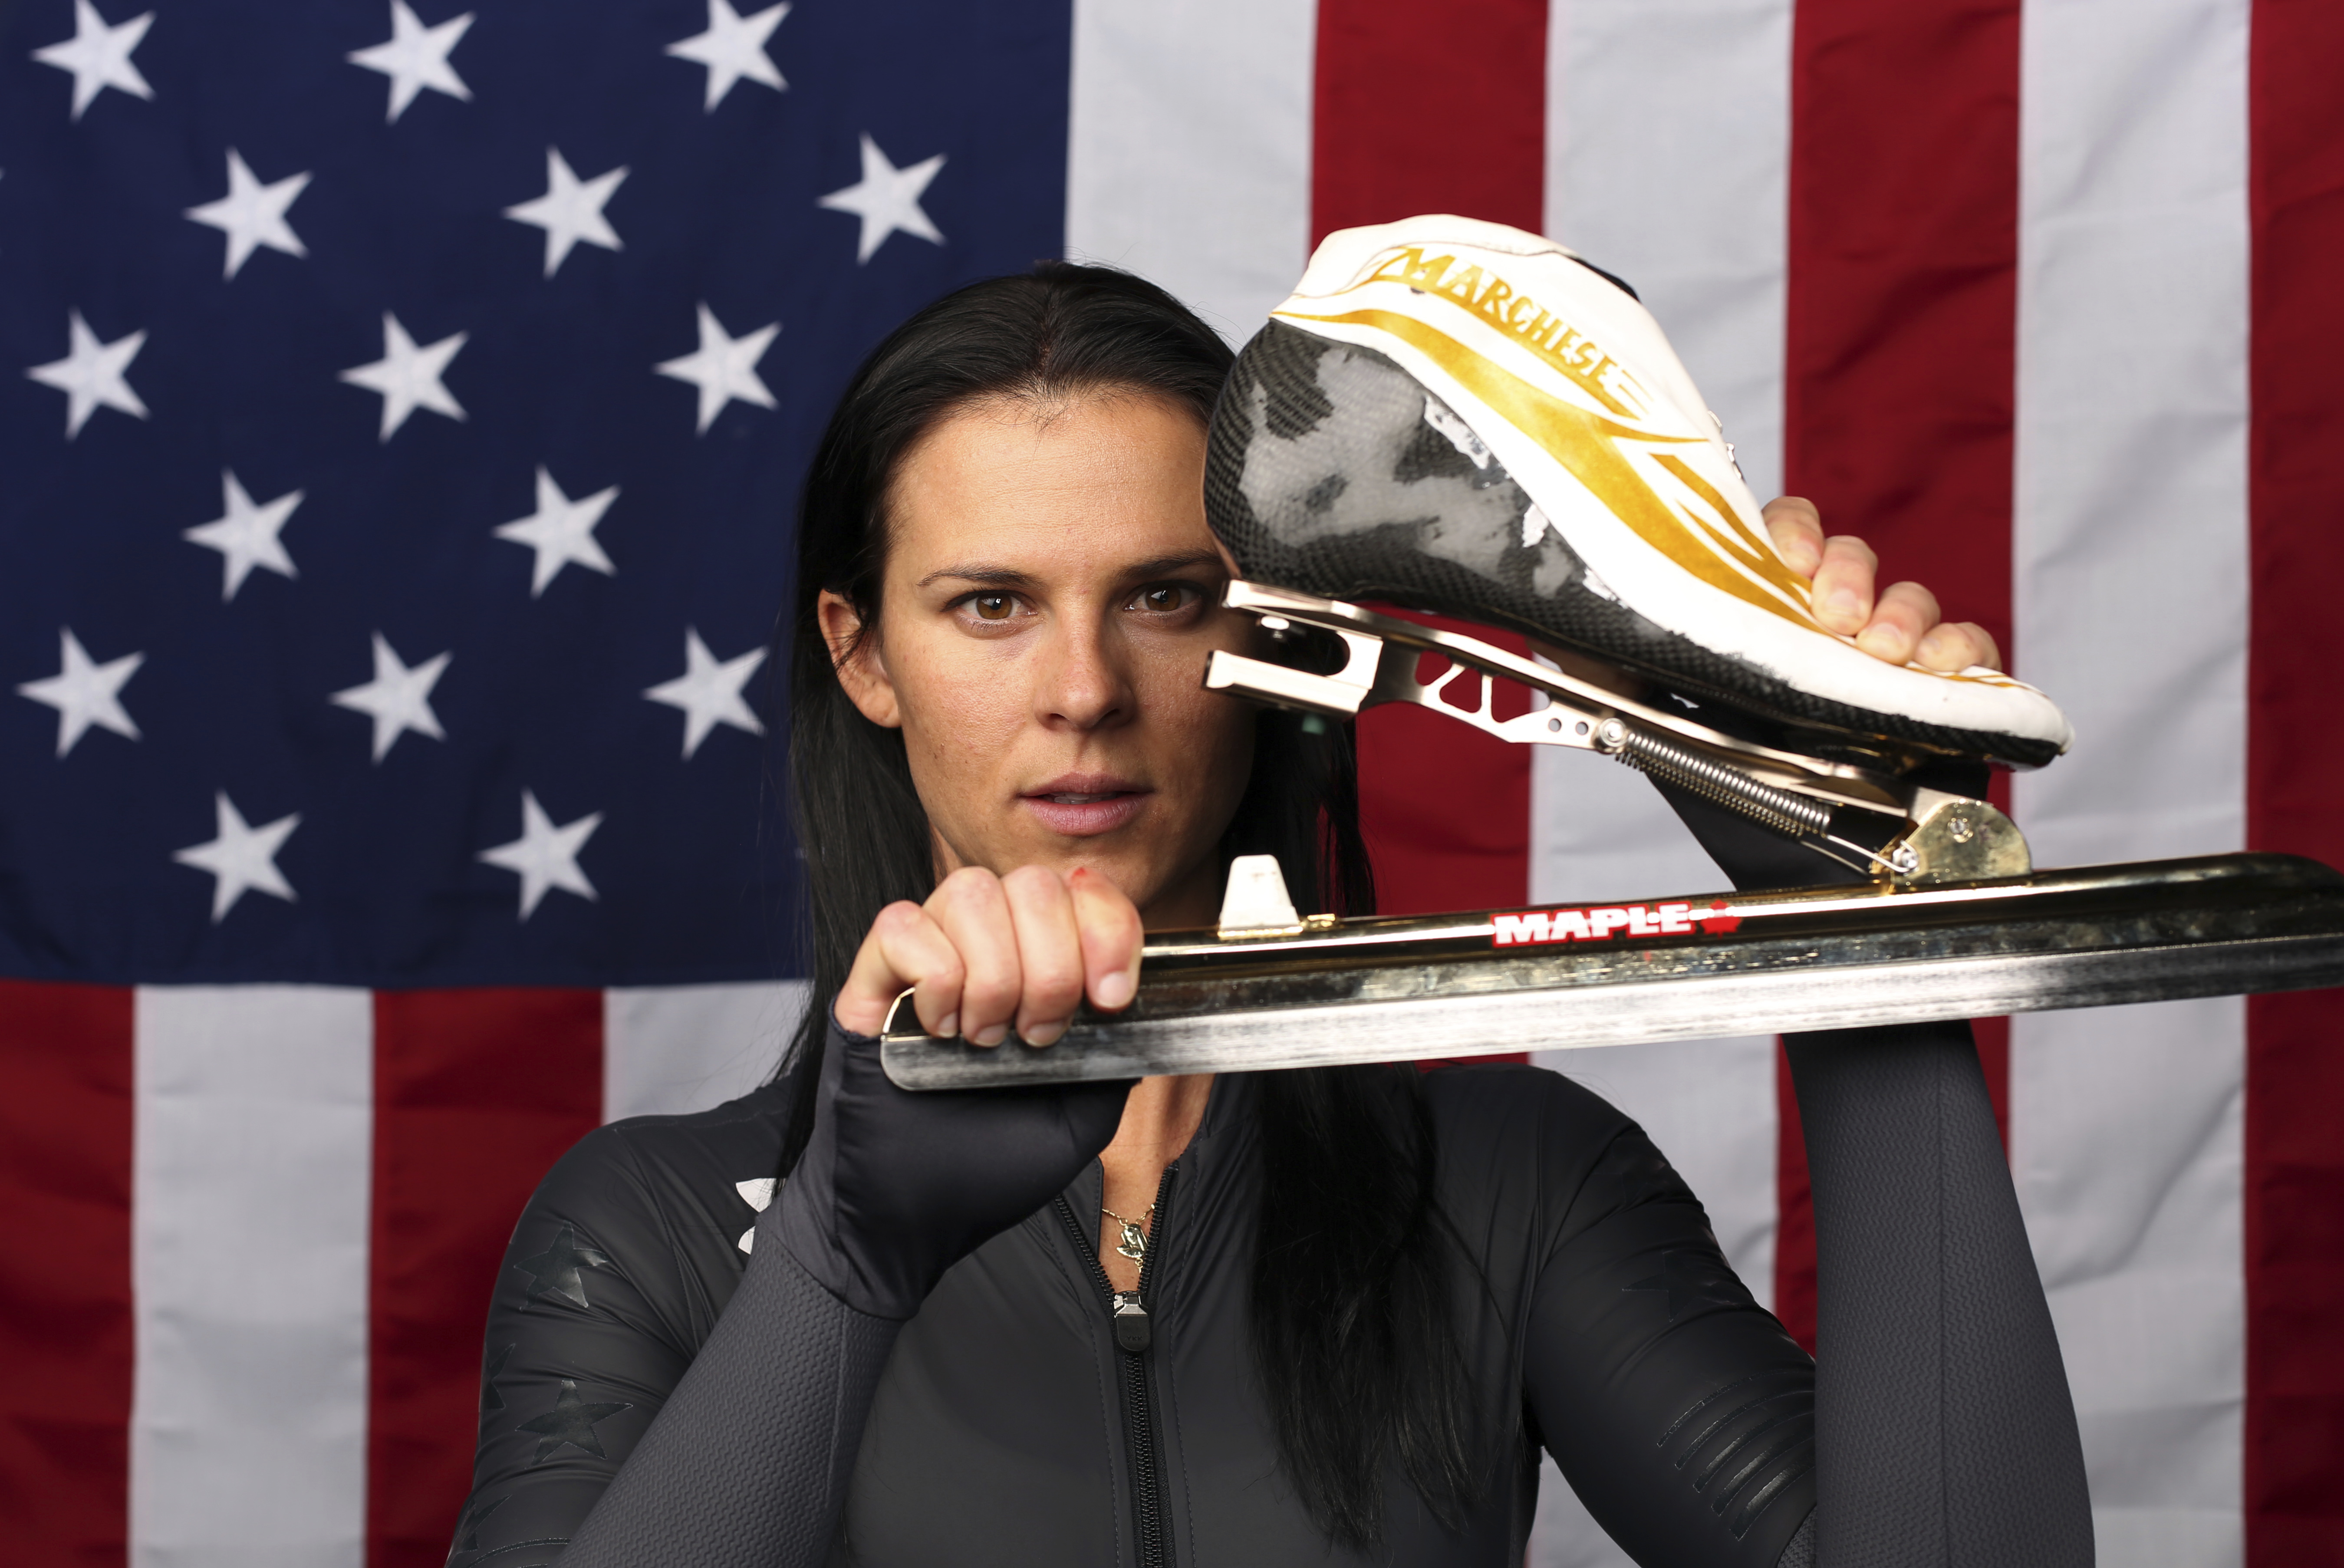 U.S. Olympic Winter Games long track speedskating hopeful Brittany Bowe poses for a portrait at the 2017 Team USA media summit Wednesday, Sept. 27, 2017, in Park City, Utah. (AP Photo/Rick Bowmer)